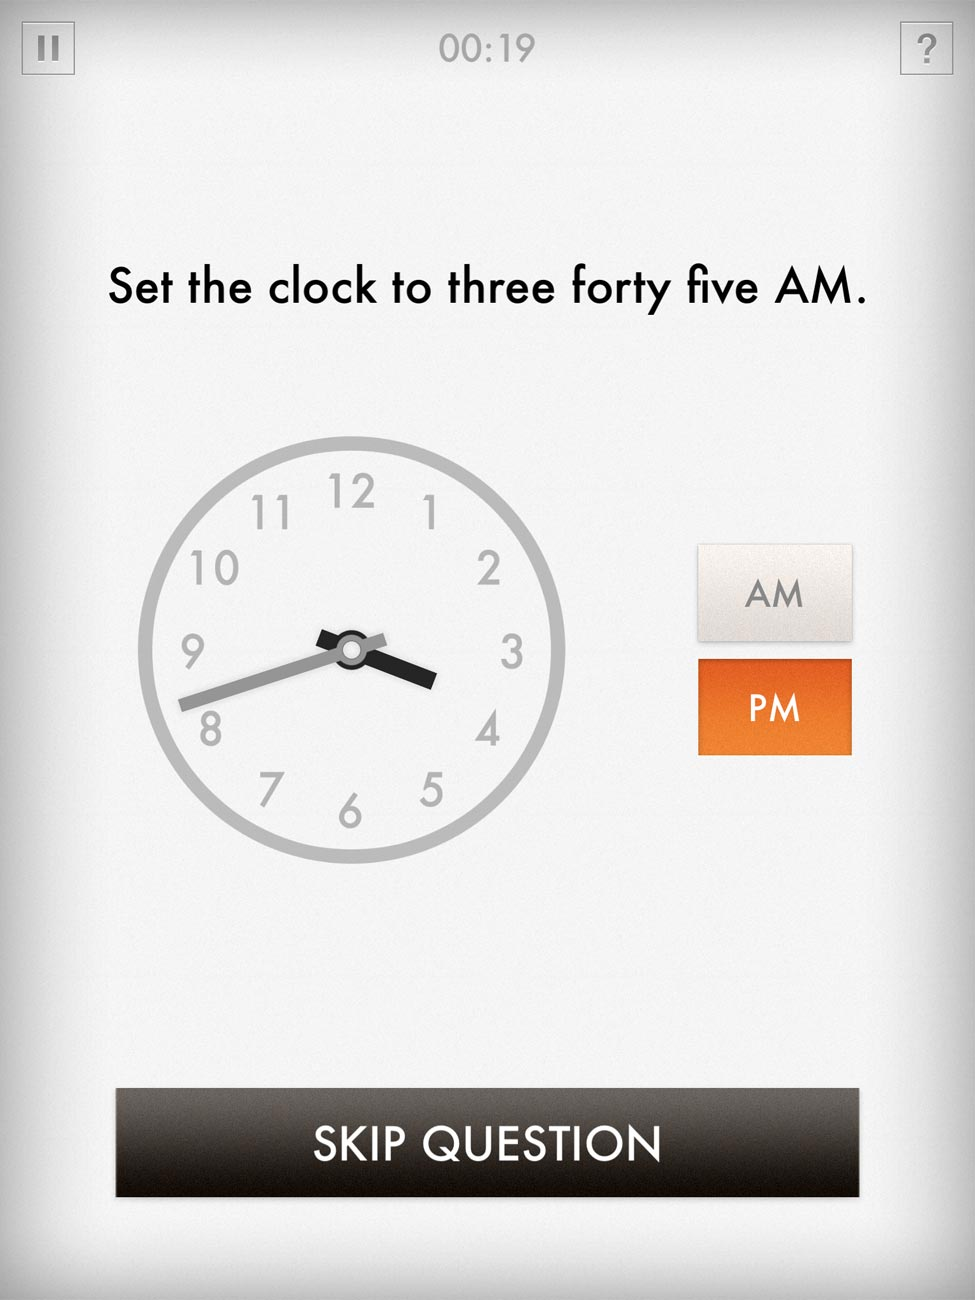 Quick Clocks lets you improve your clock-reading skills by manipulating clocks on the screen.